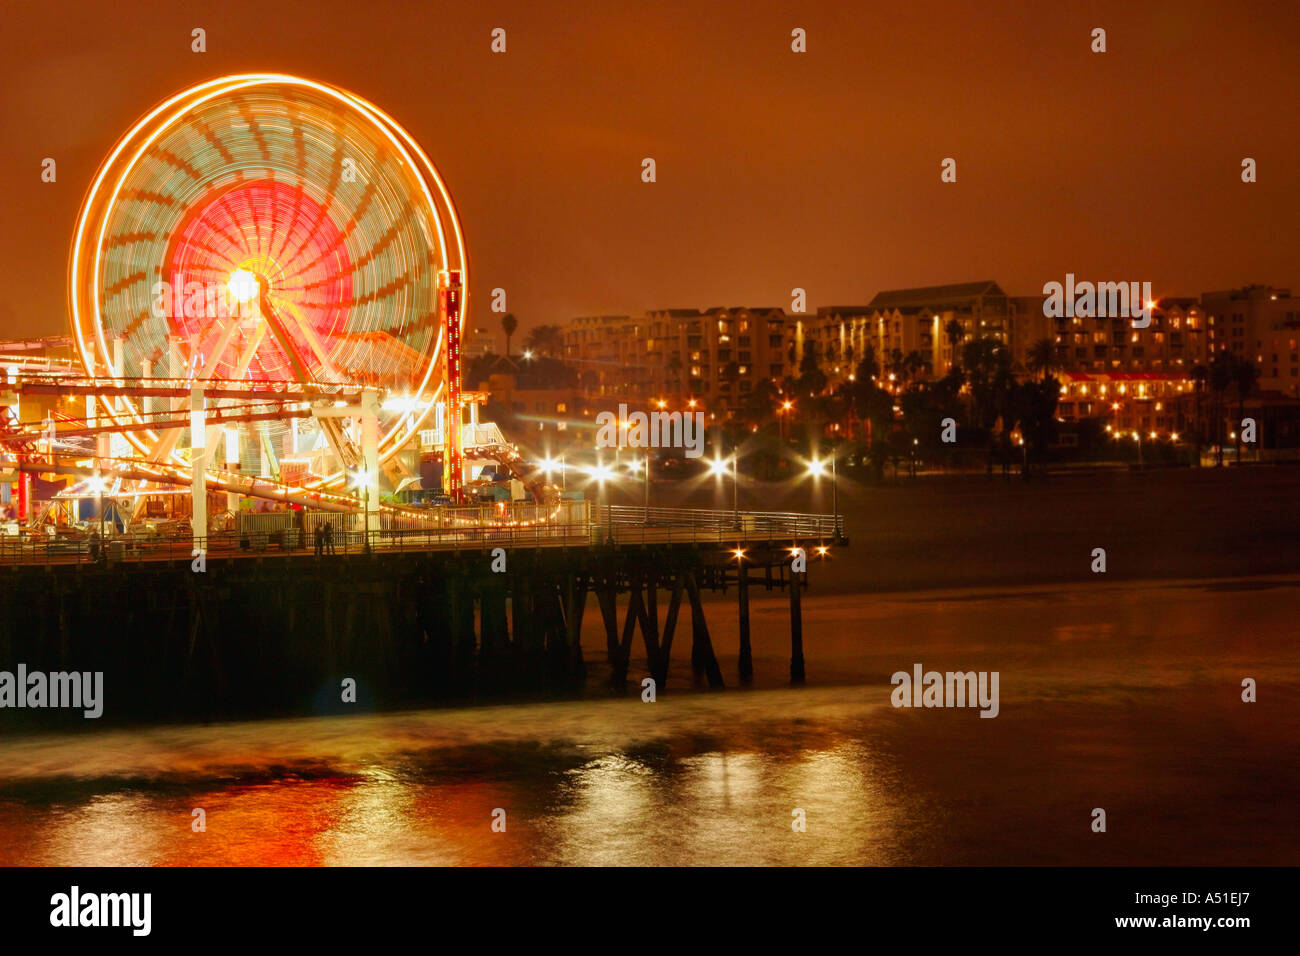 Ferris wheel at night Stock Photo